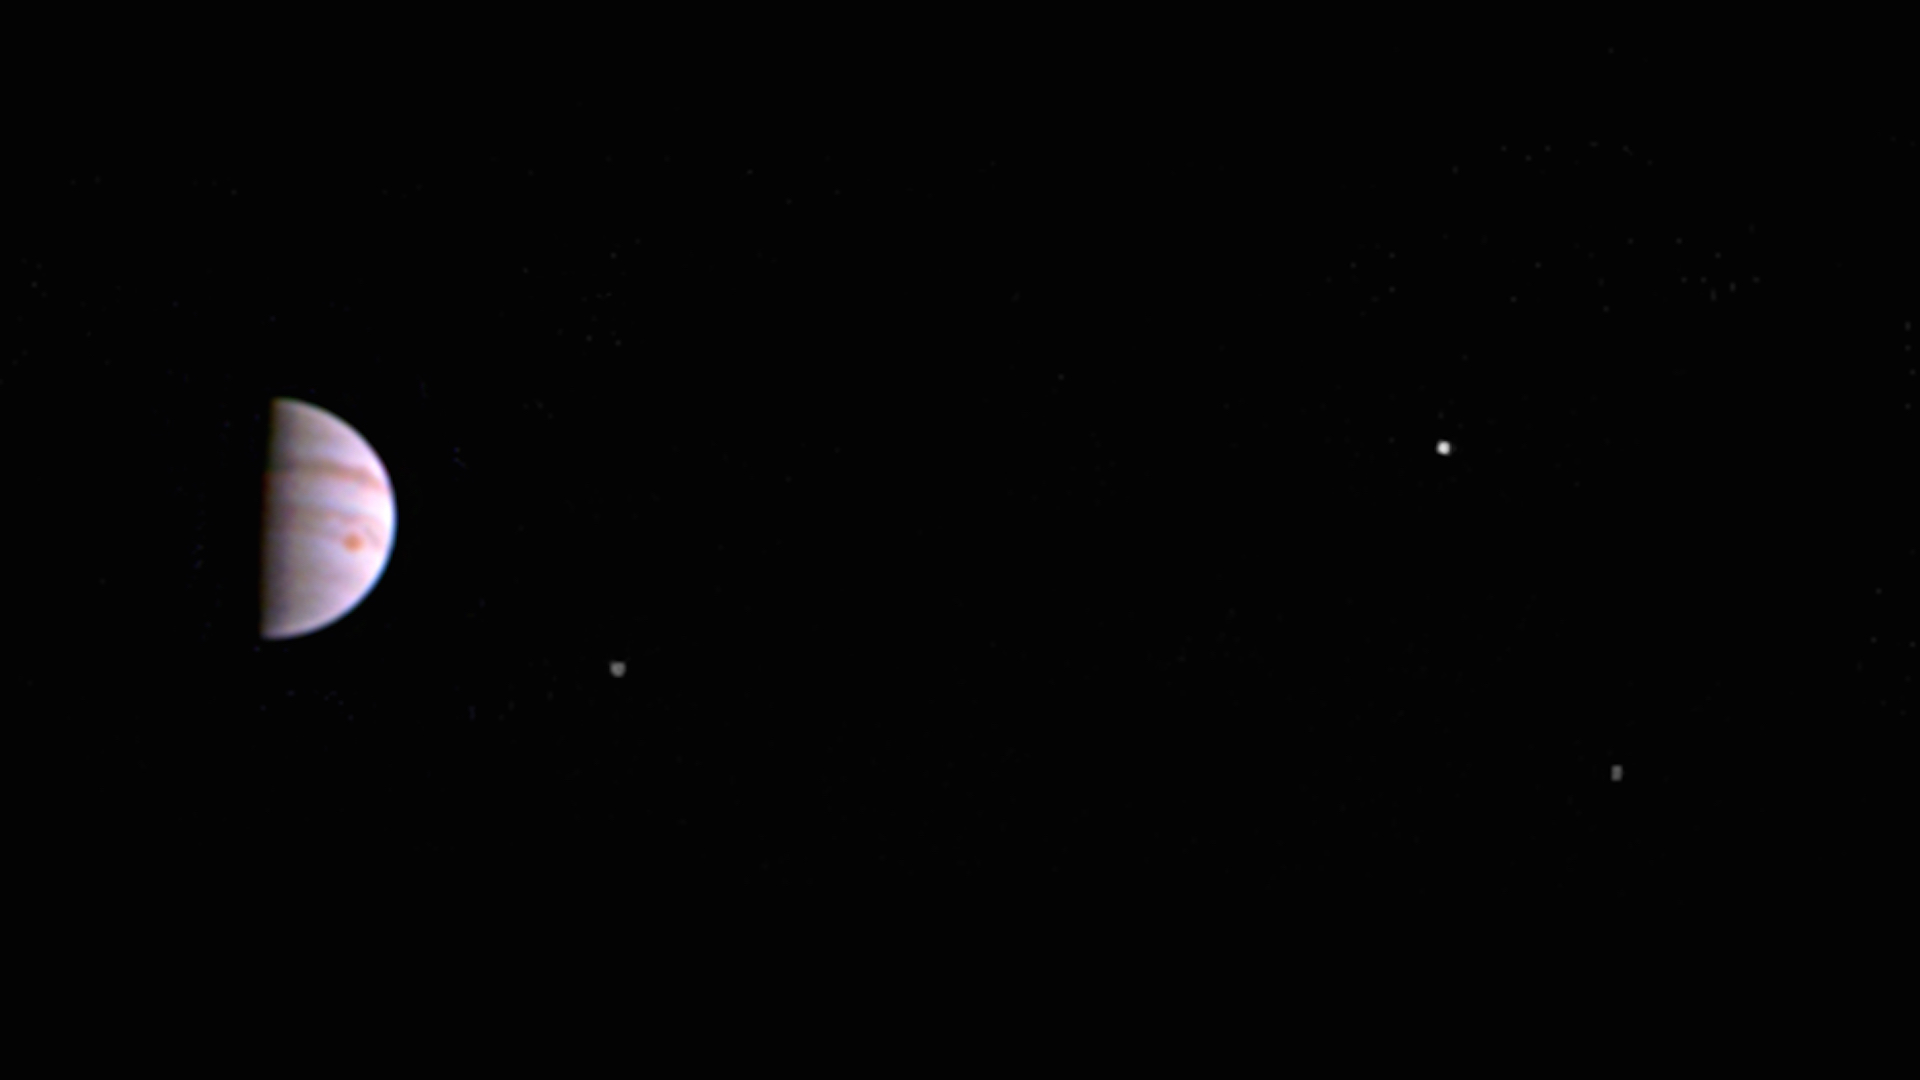 NASA's Juno probe beams back its first images from Jupiter's orbit